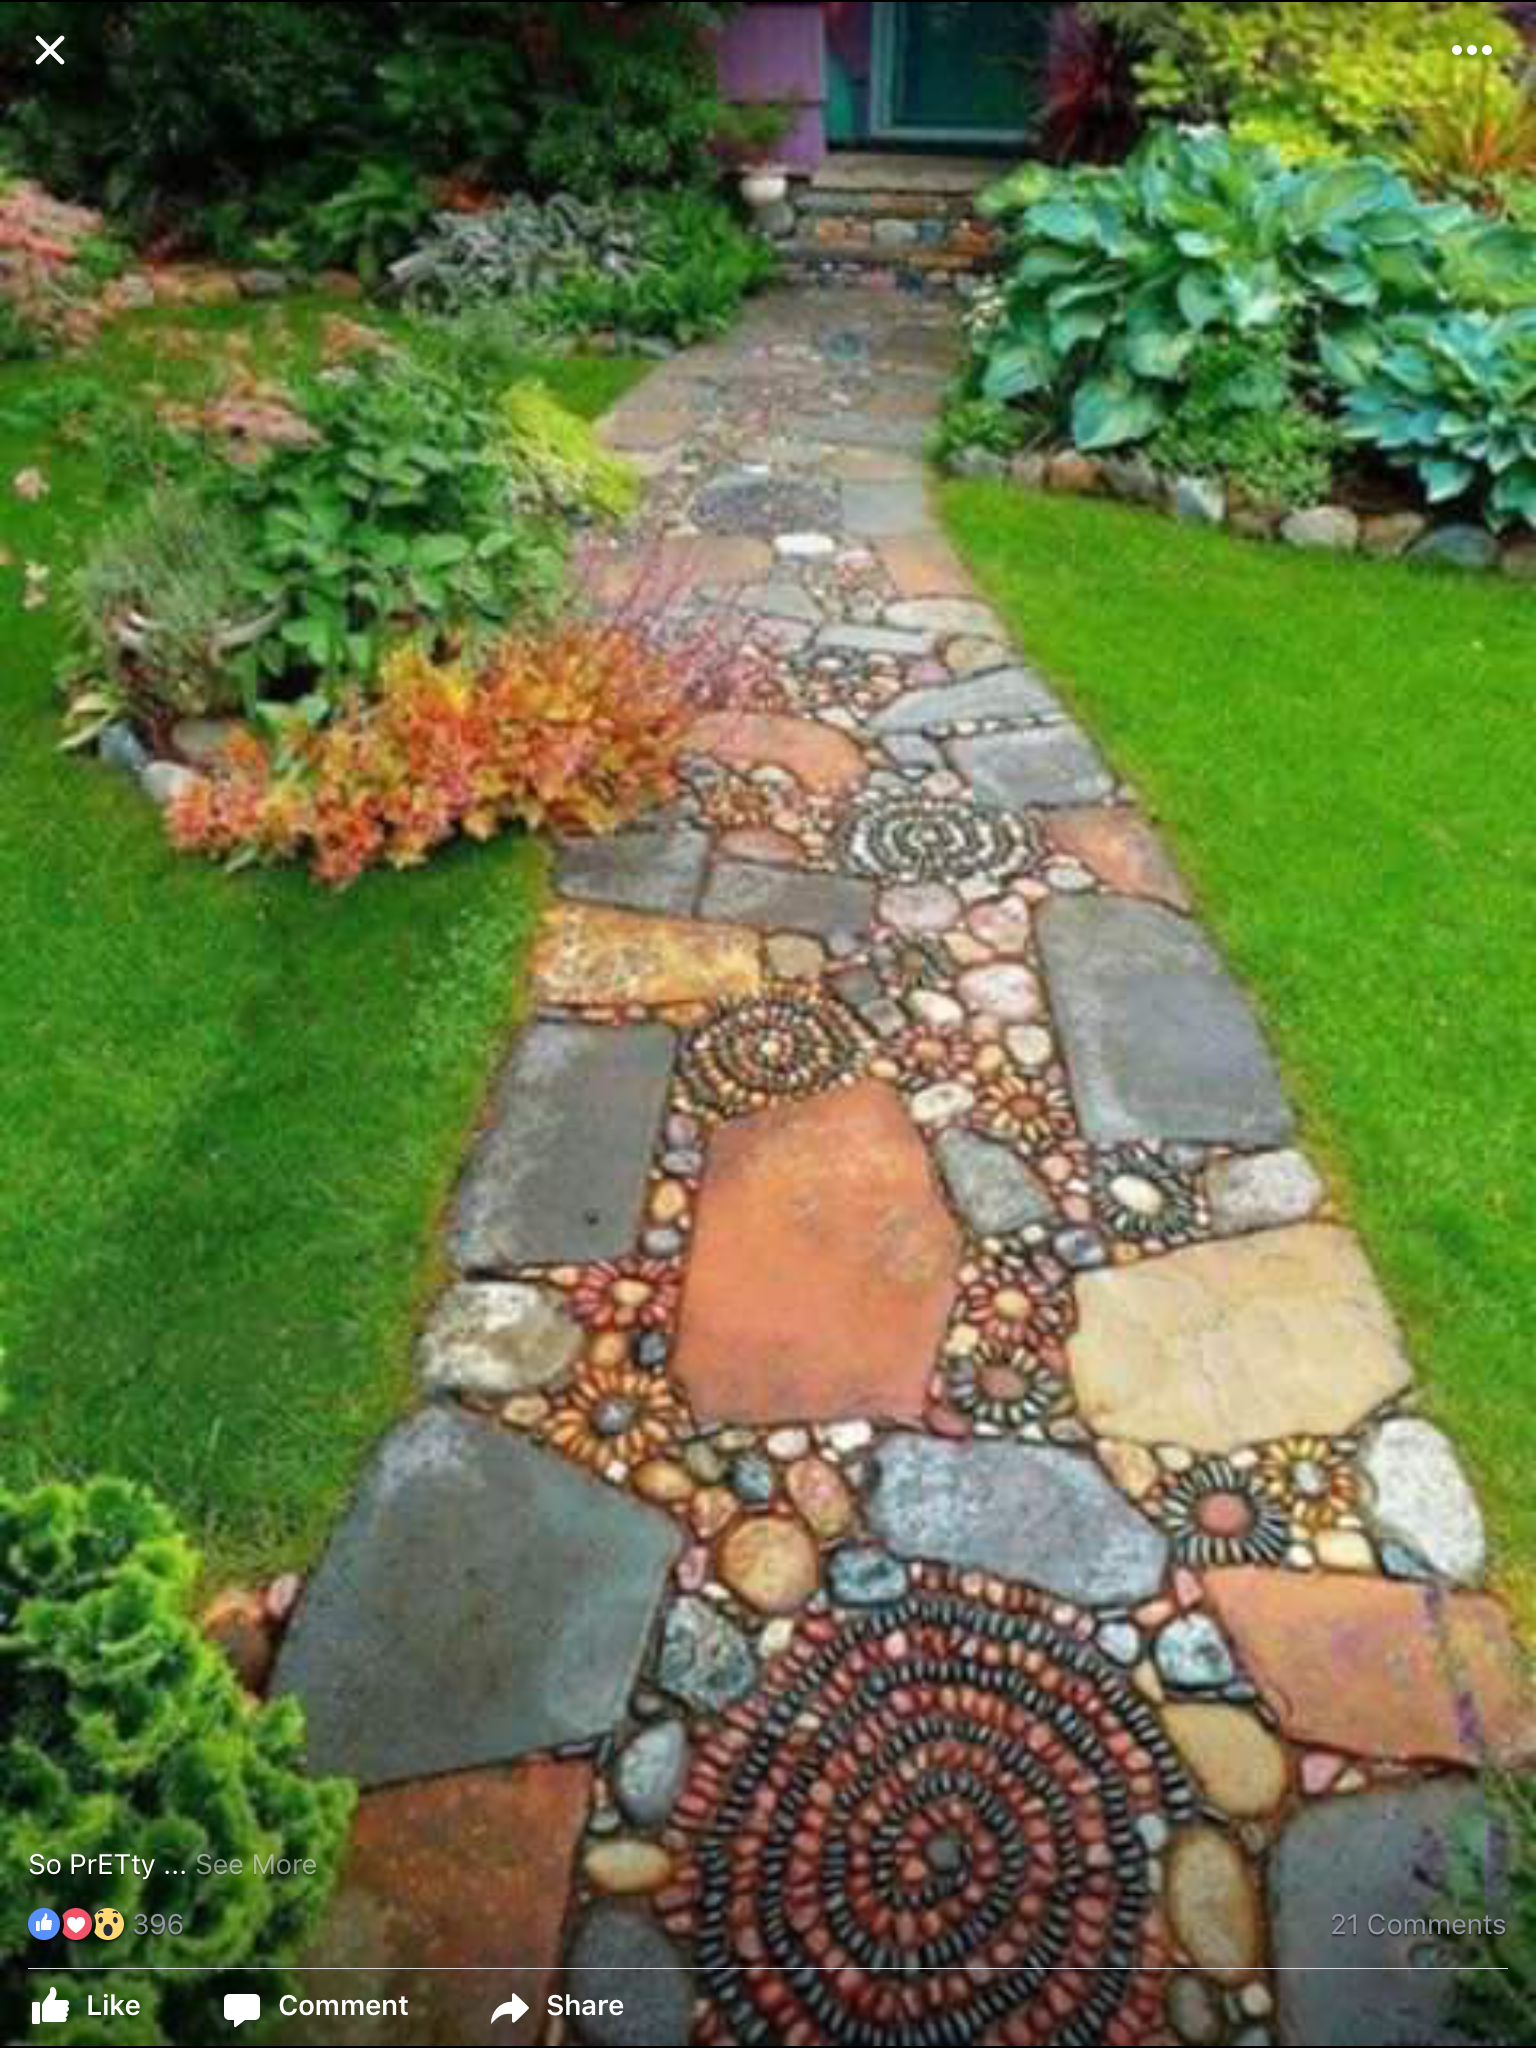 Pin by Andrea Greman on kert | Pinterest | Gardens, Yards and Walkways